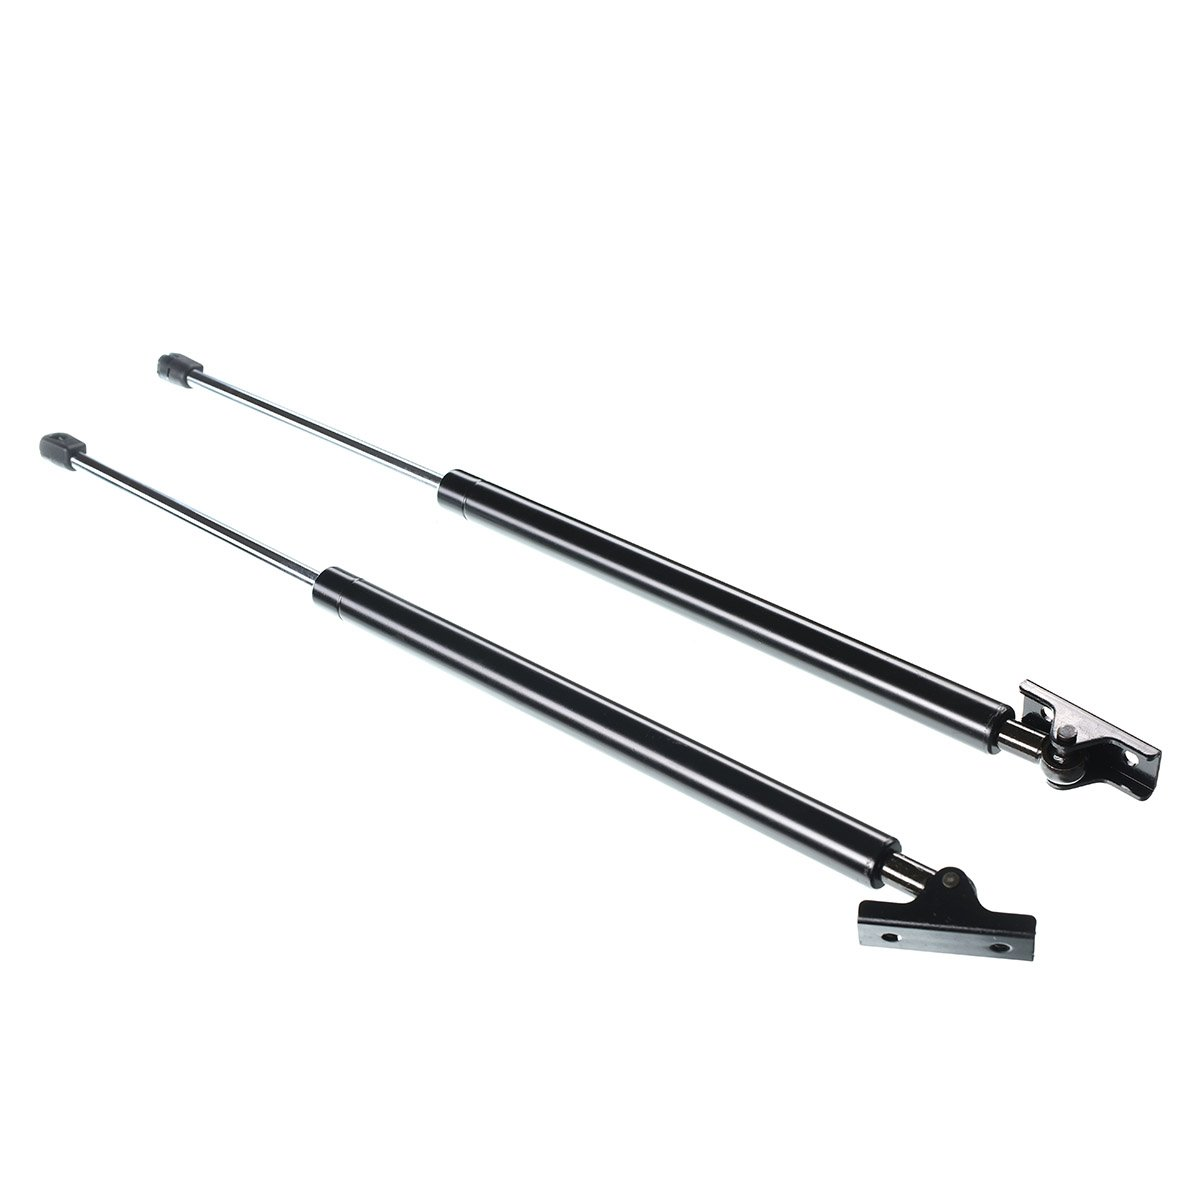 A-Premium Tailgate Liftgate Rear Hatch Lift Supports Shock Struts for Jeep Cherokee XJ 1997-2001 2-PC Set